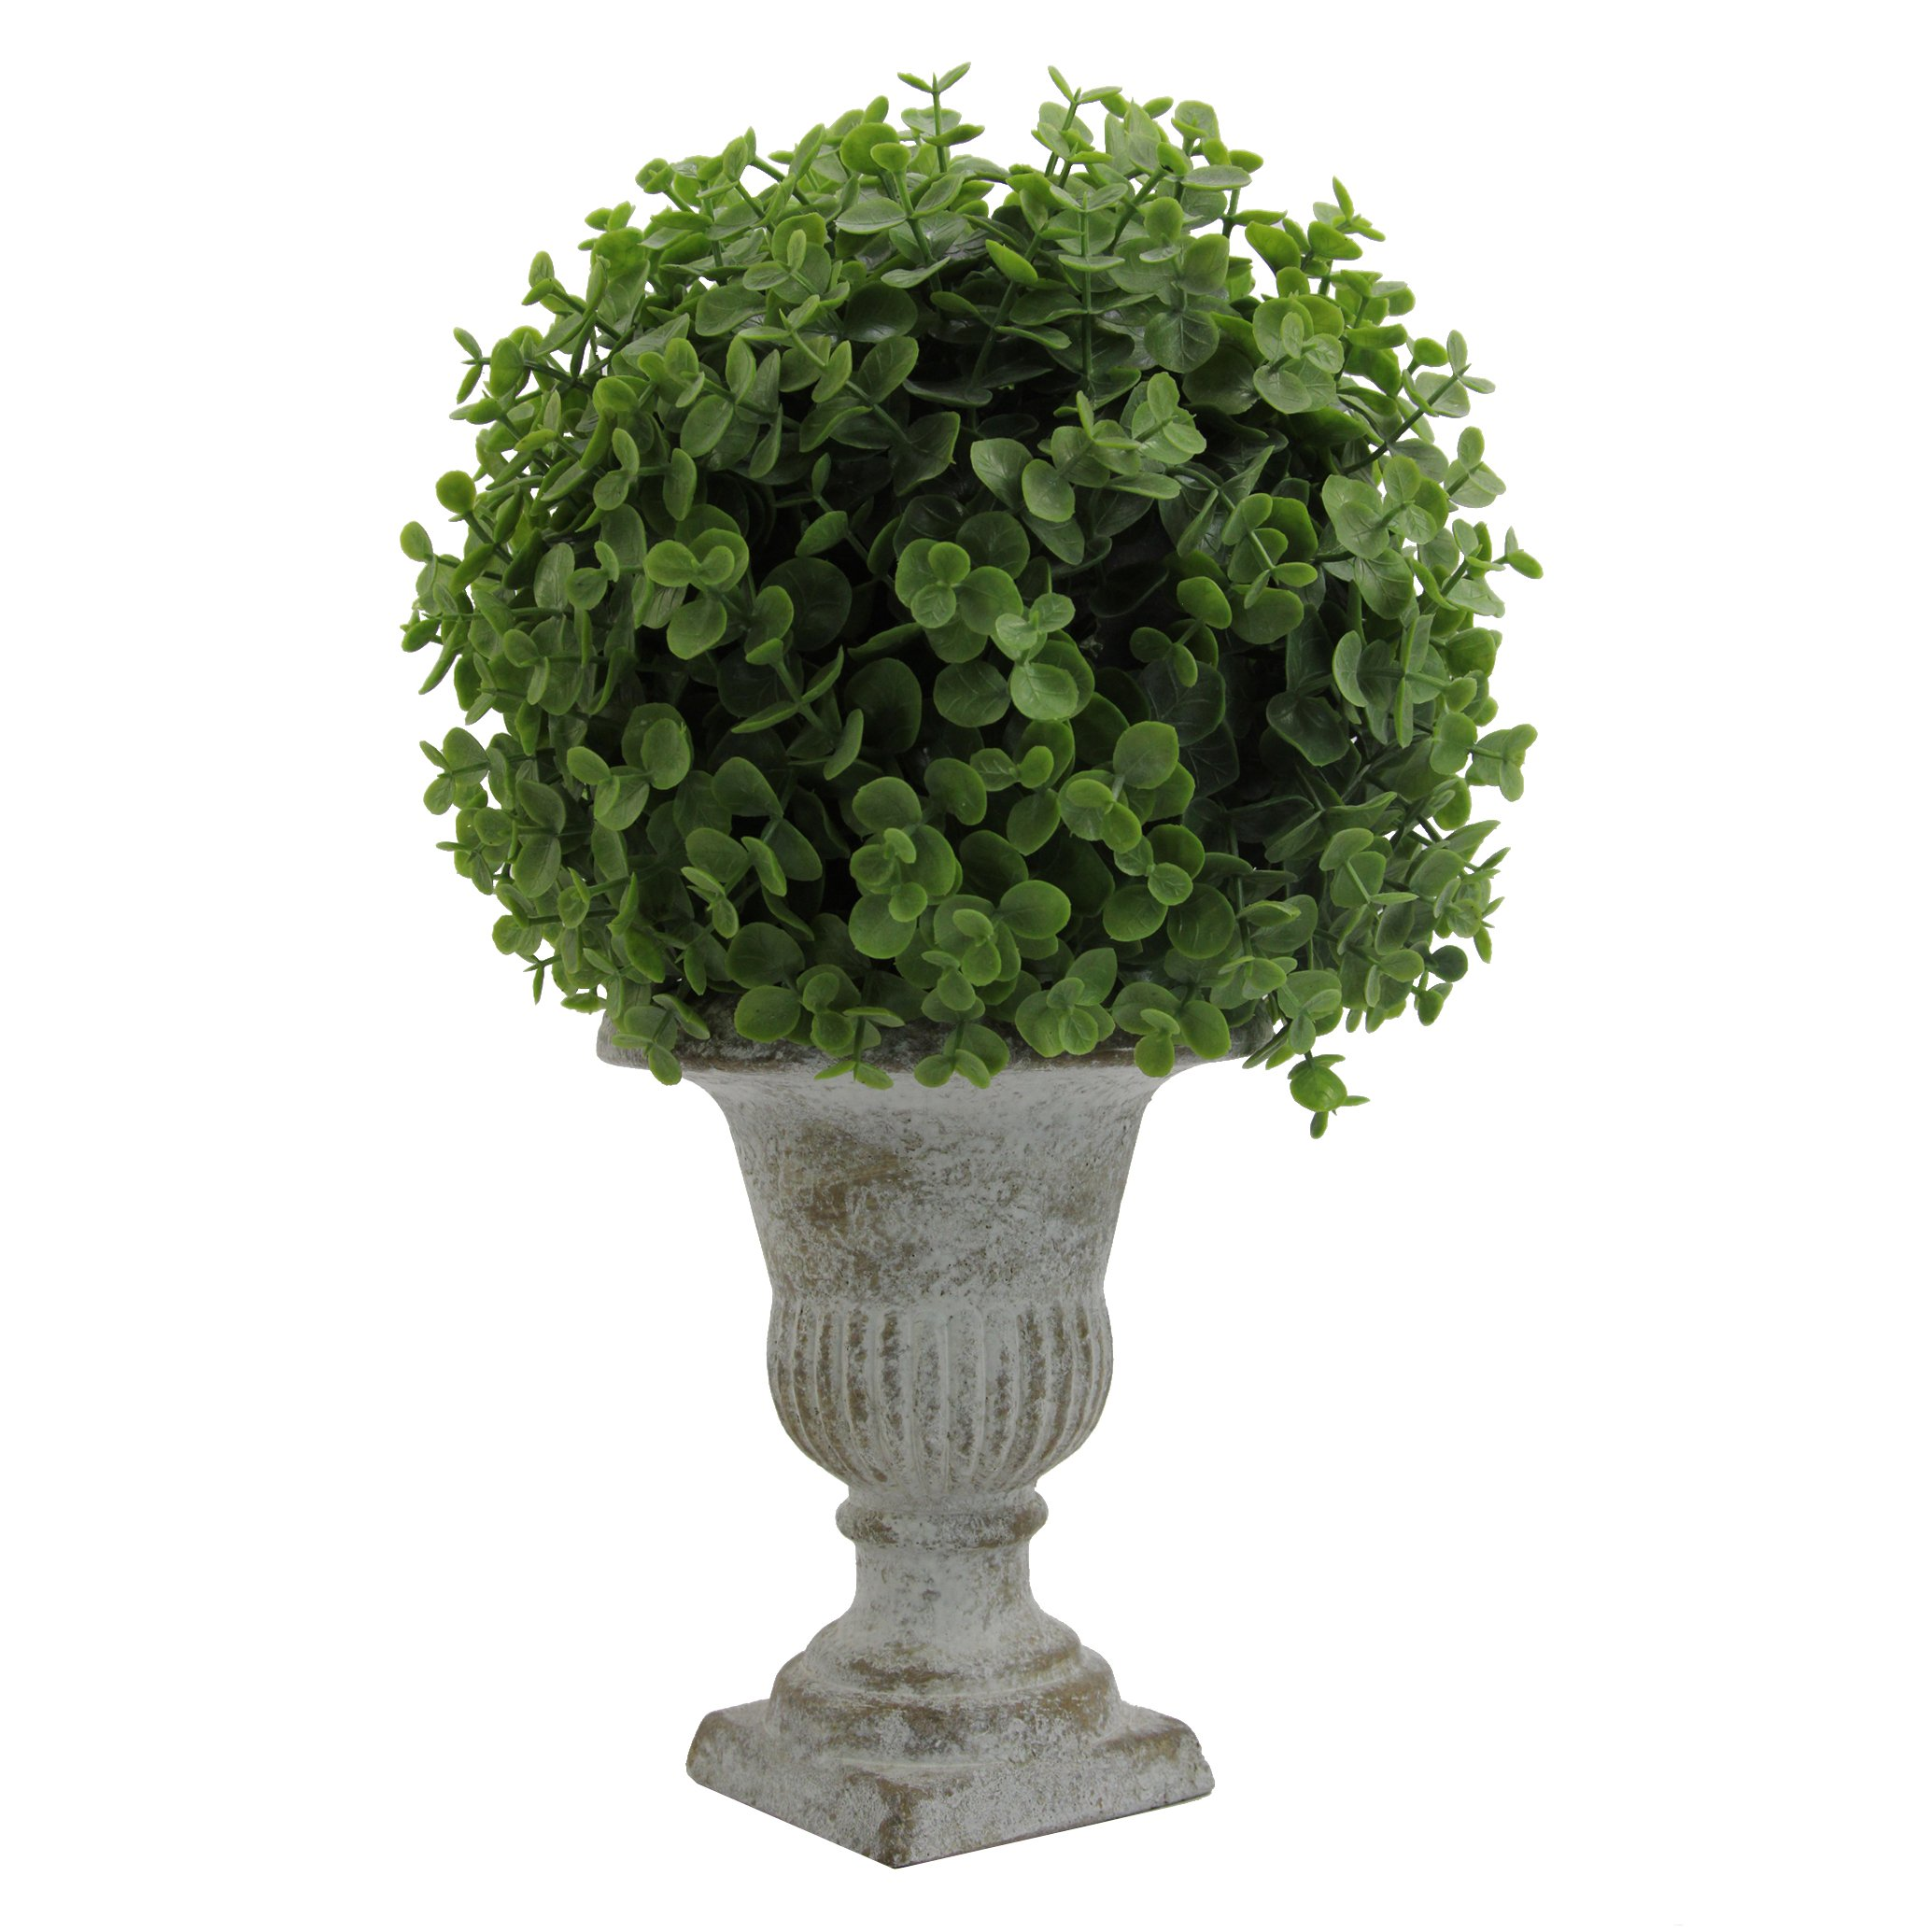 Admired By Nature GG7655-GREEN 13'' Tall Artificial Desktop Potted Eucalyptus Ball with Ceramic Pot, Green by Admired By Nature